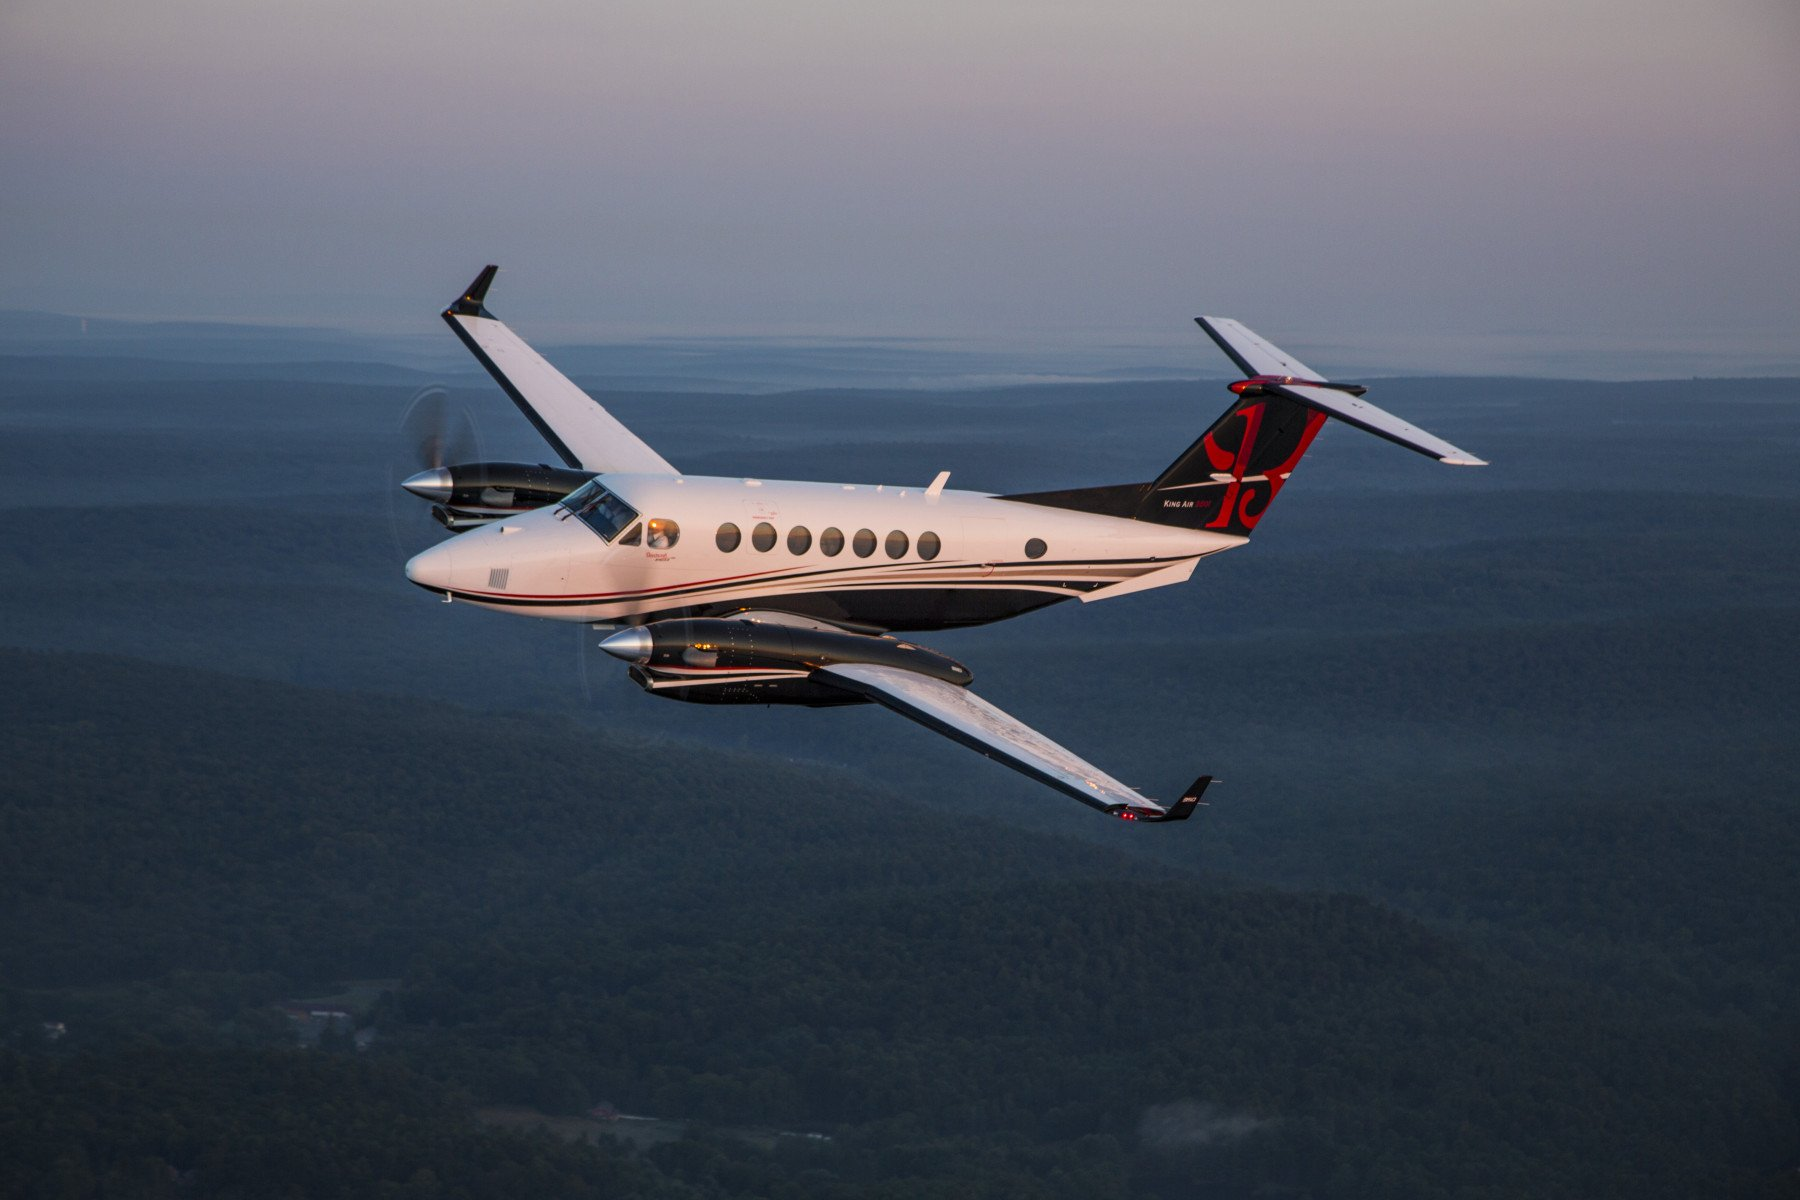 Beechcraft King Air 300 series